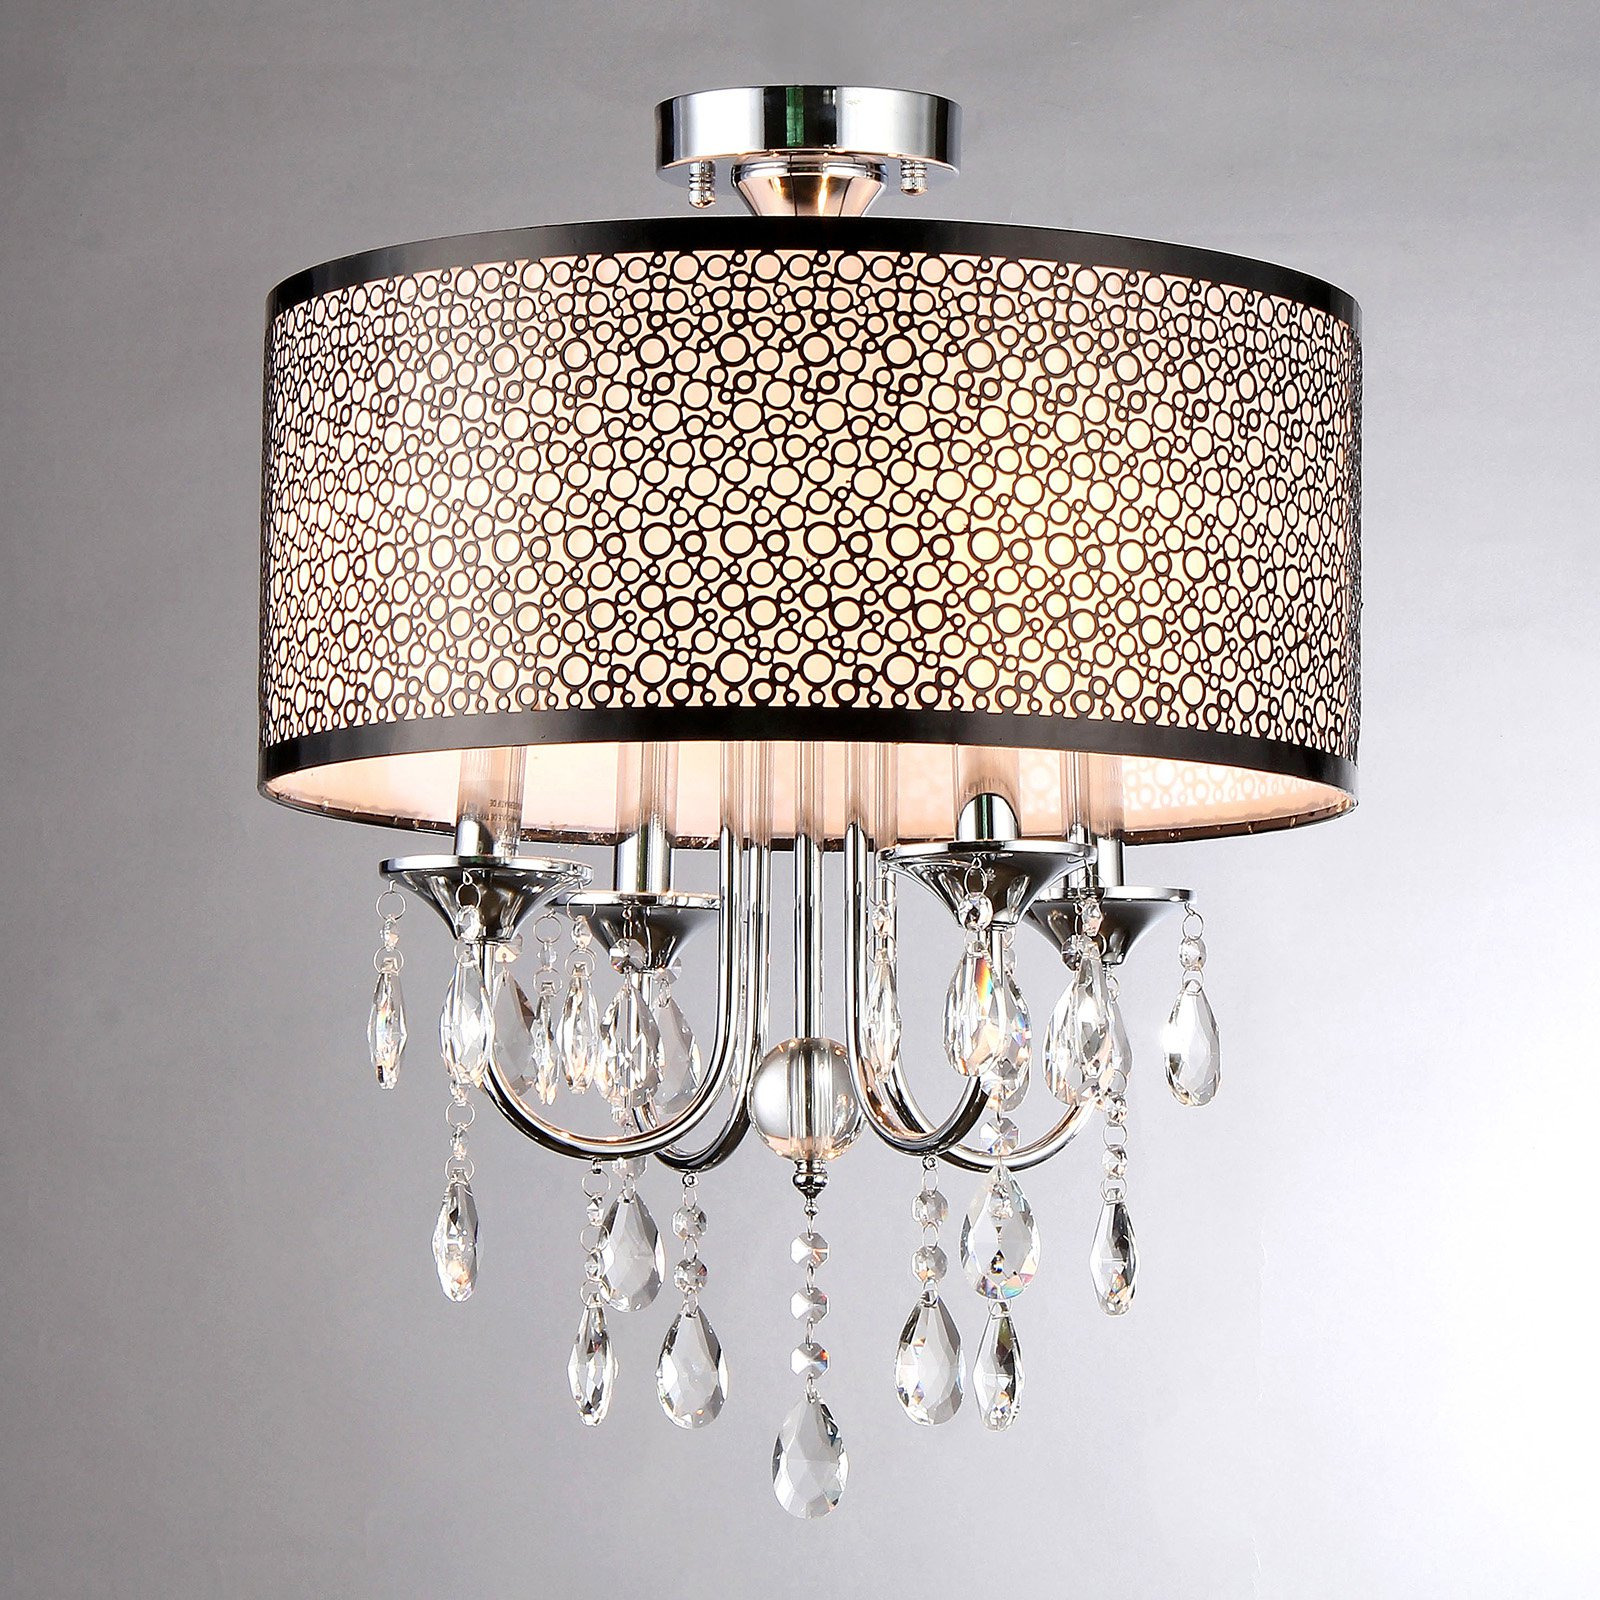 Warehouse of Tiffany Shane RL7901/4 Crystal Semi Flush Mount Light